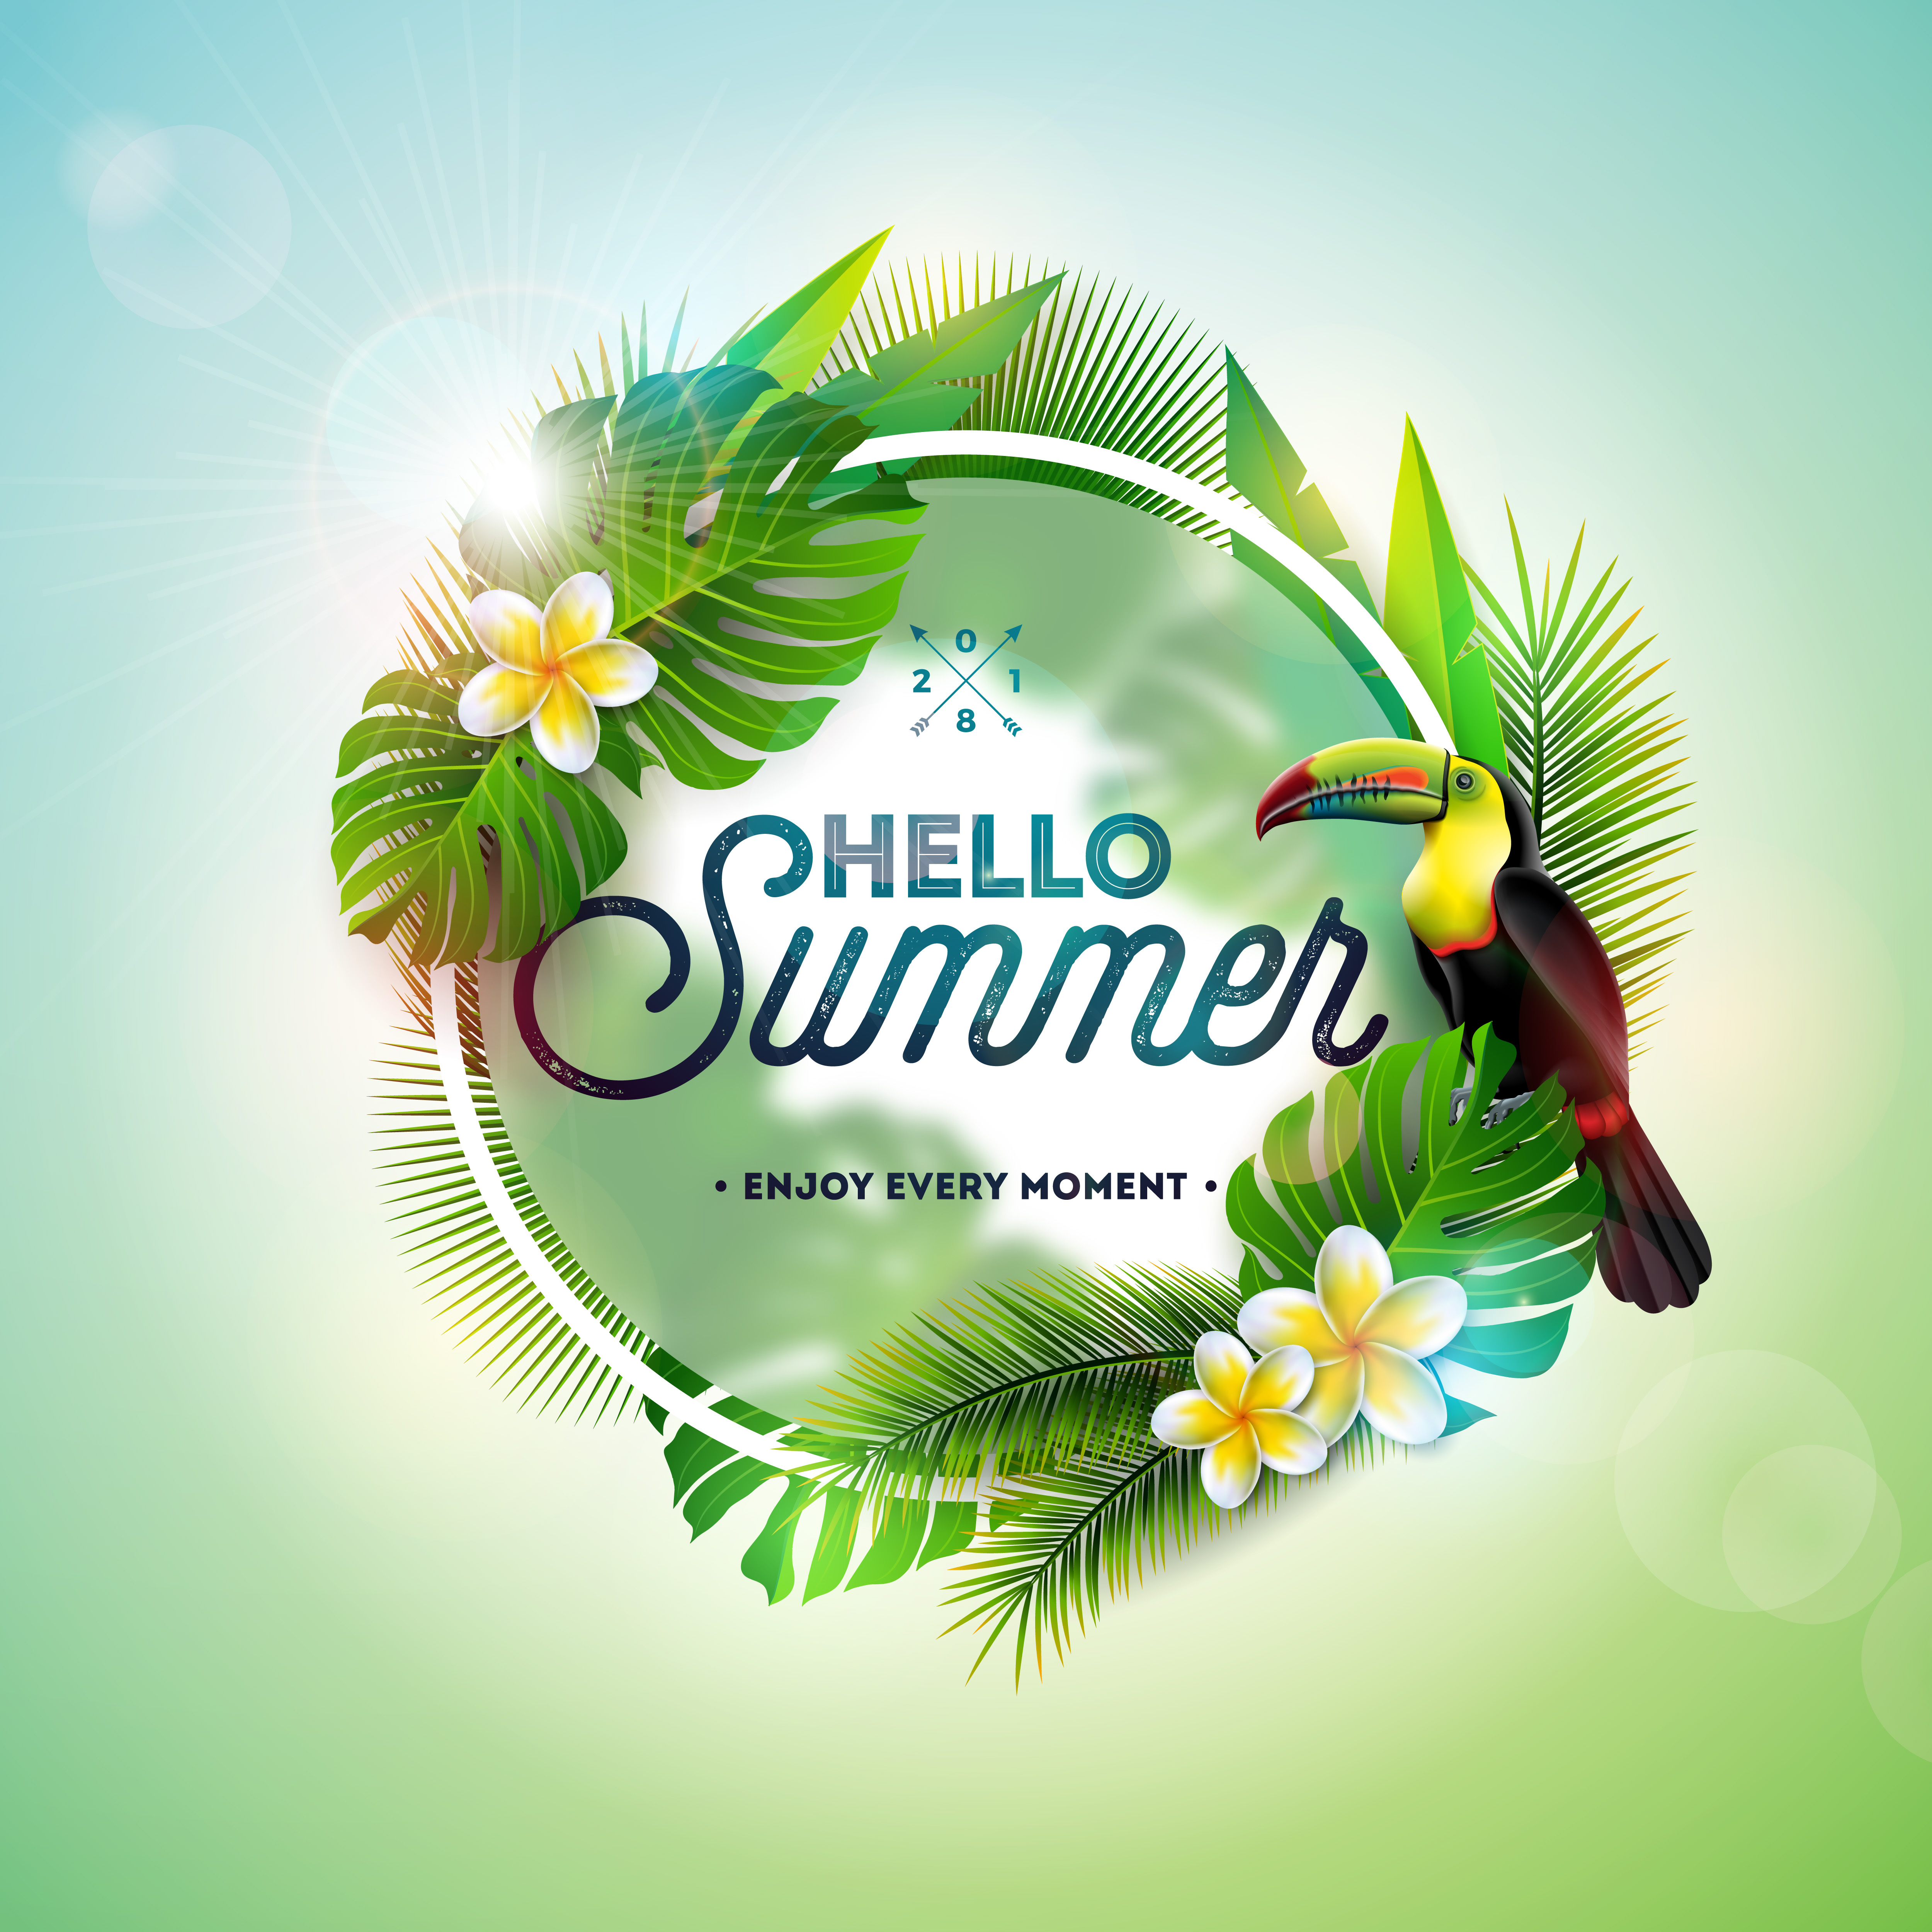 Hello Summer Illustration With Toucan Bird On Tropical